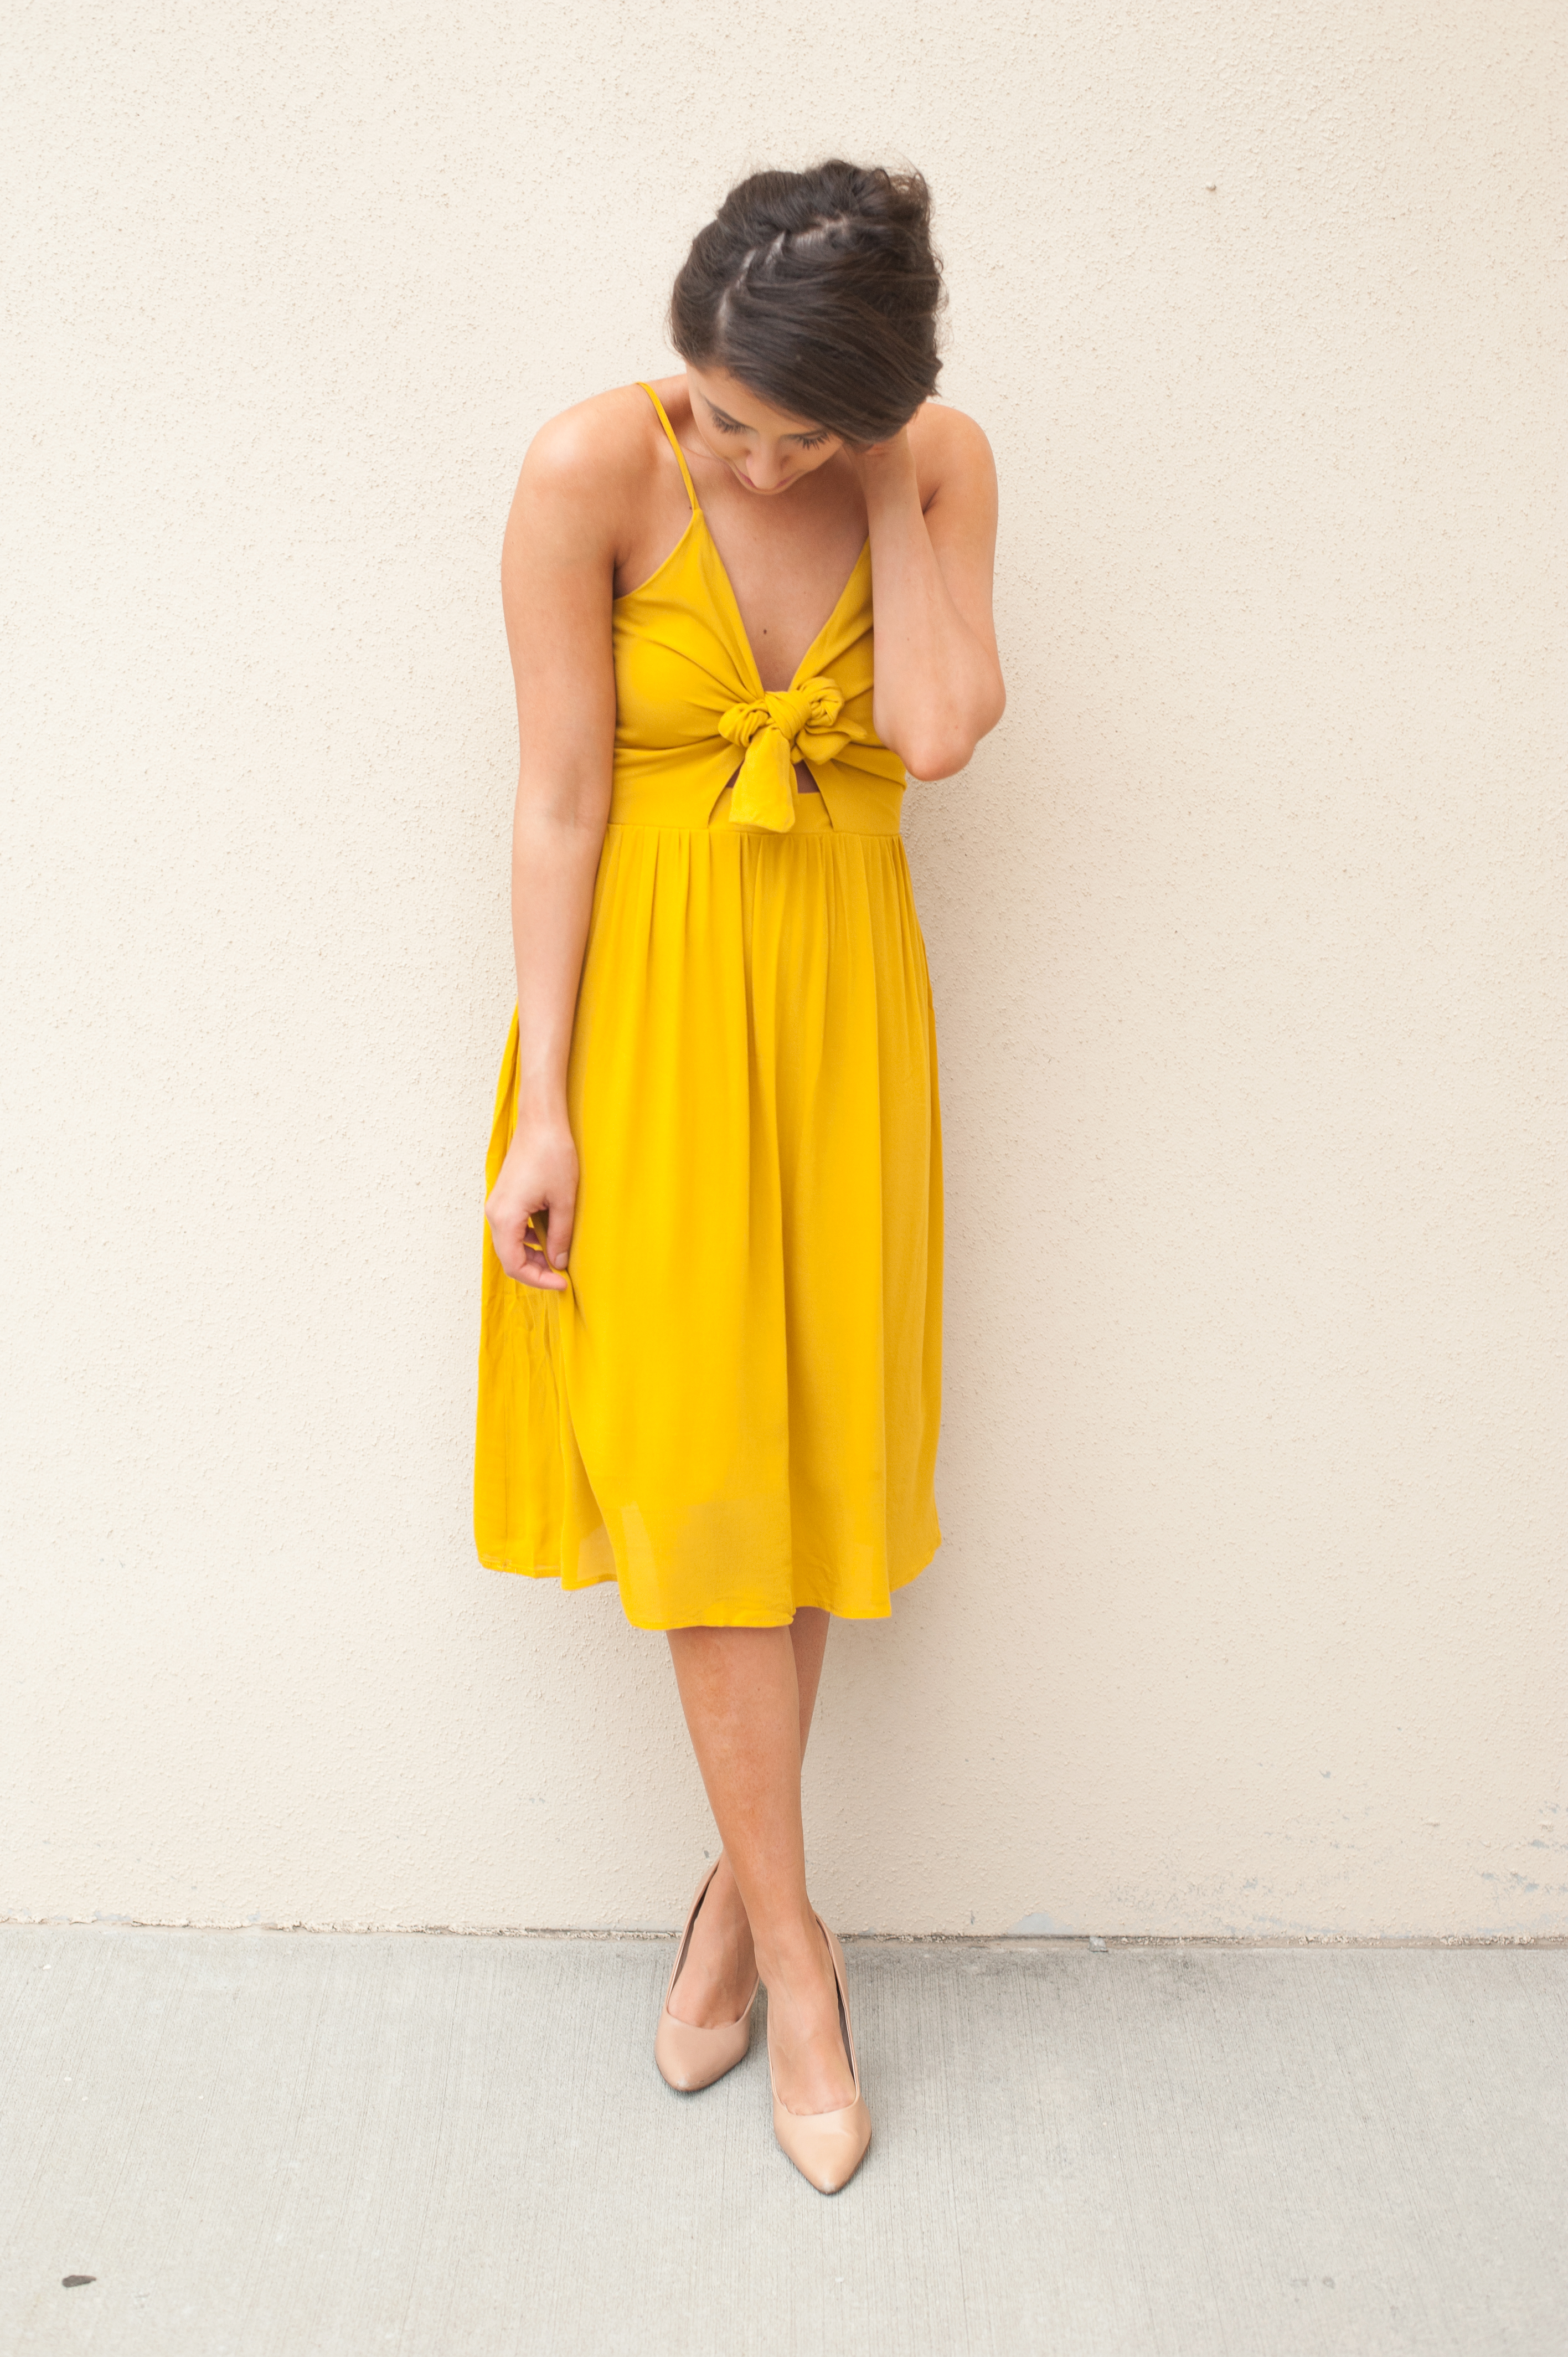 Dress Up Buttercup // A Houston-based fashion and inspiration blog developed to daily inspire your own personal style by Dede Raad | Yellow Tie Front